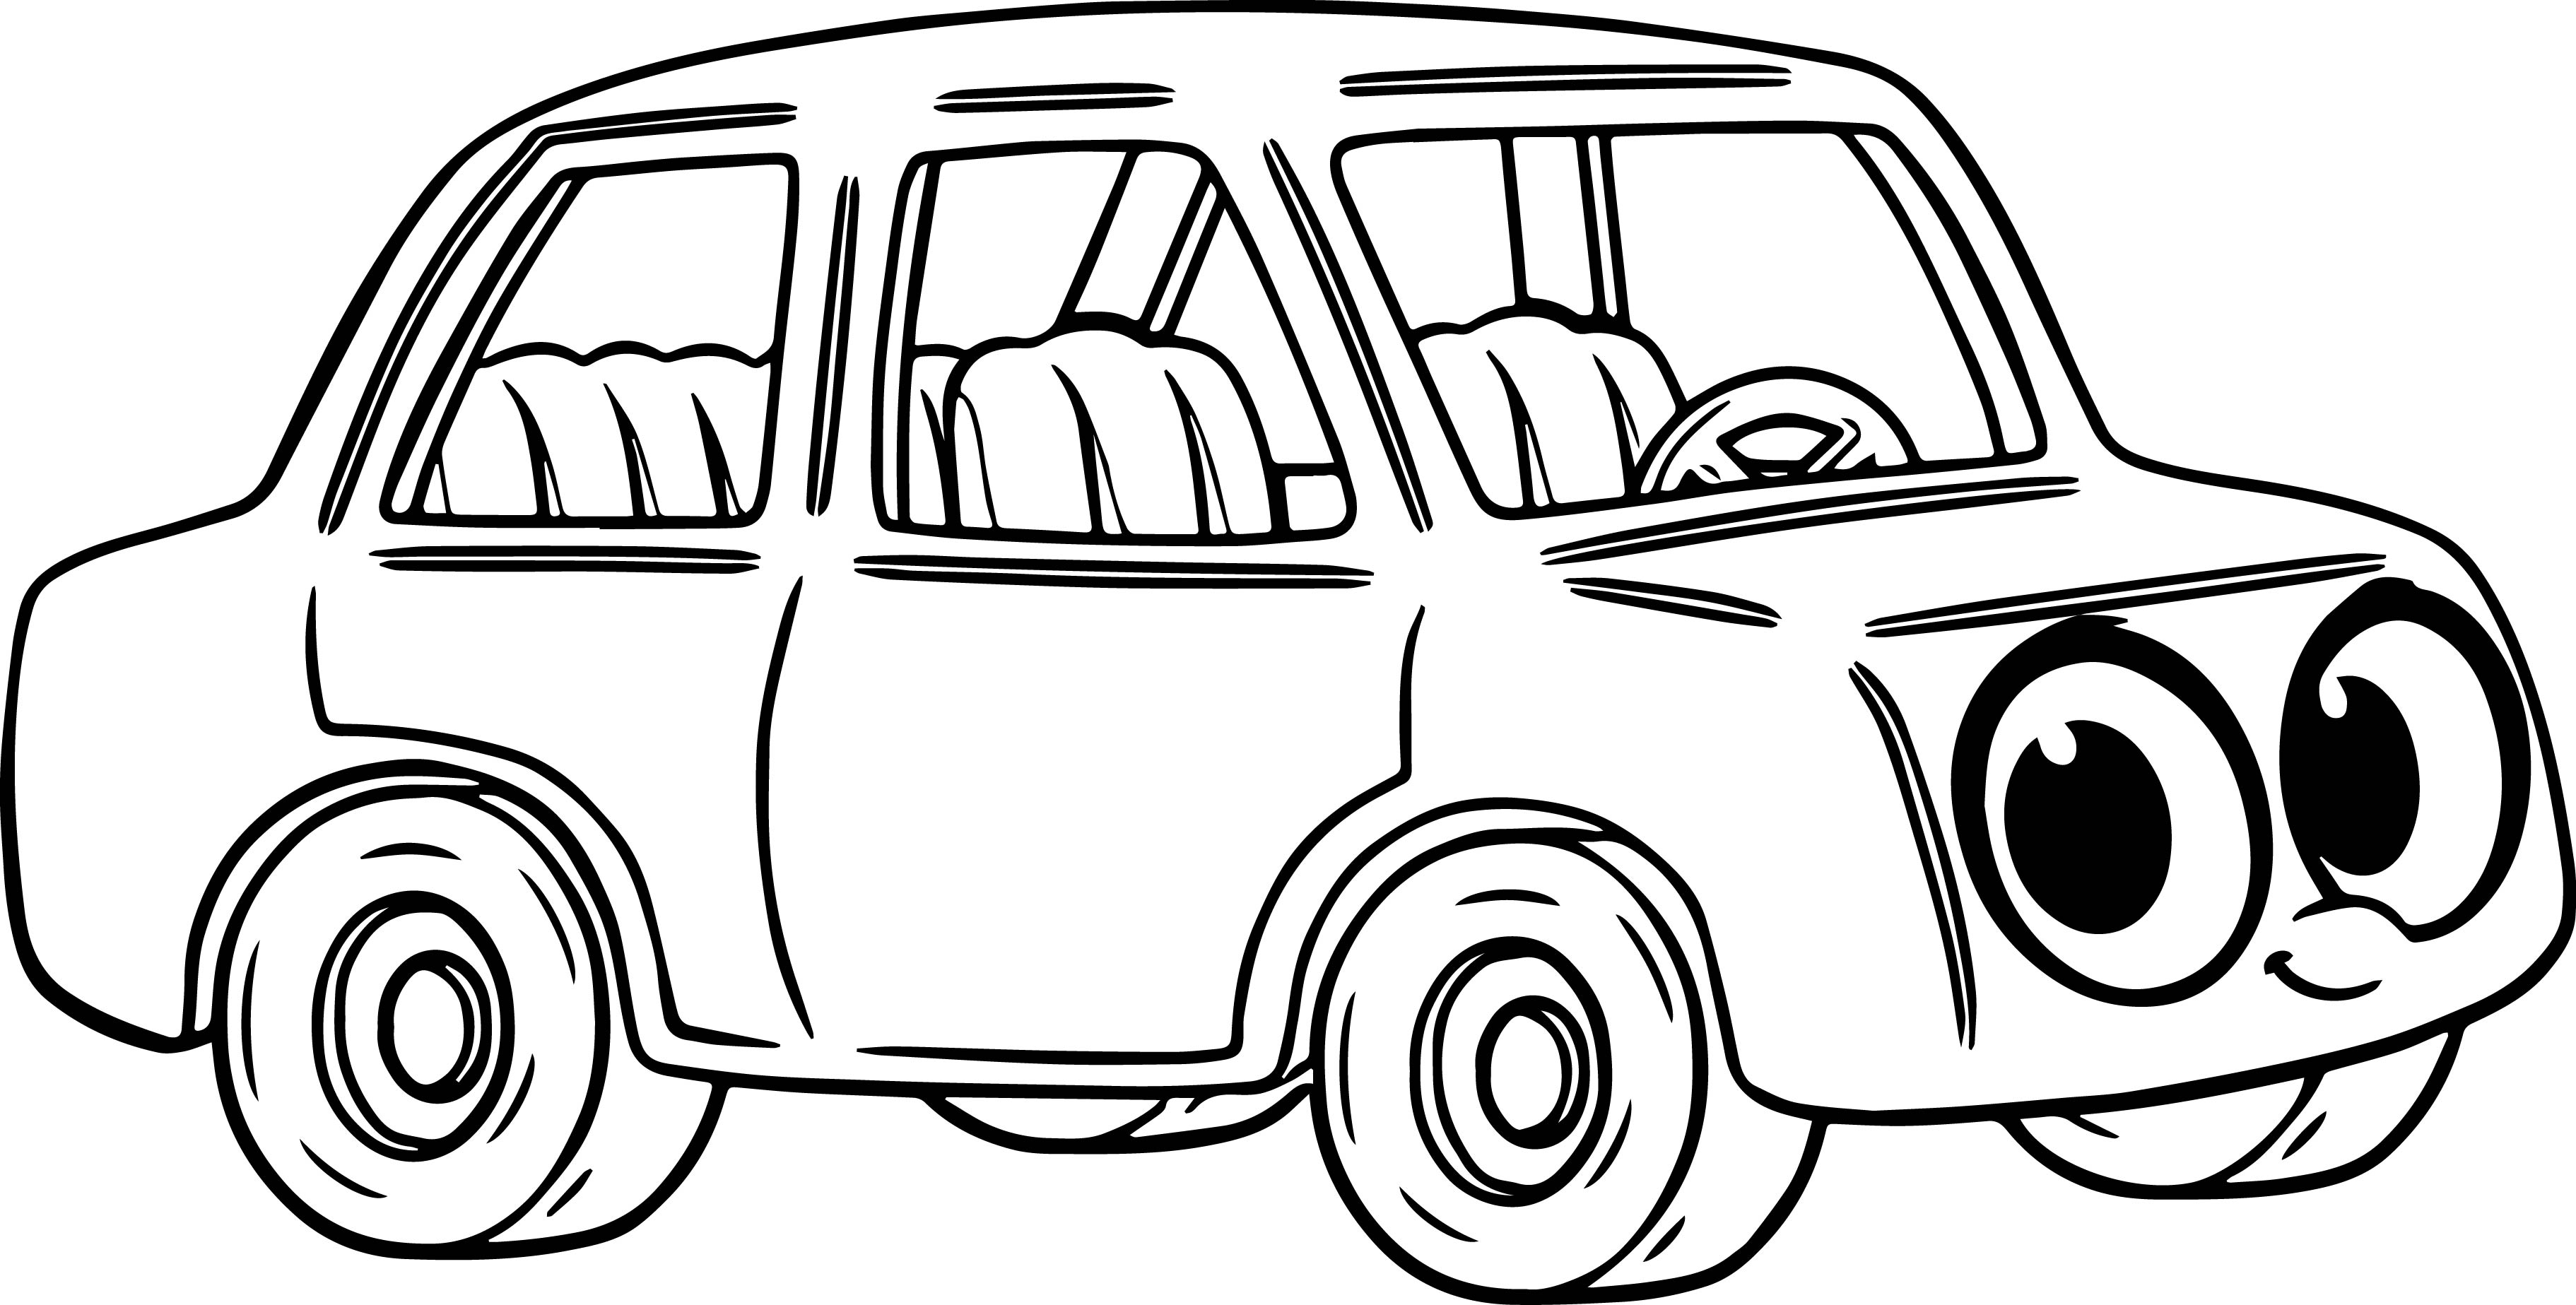 Coloring Pages Cars Cartoon : Morphle coloring pages related keywords